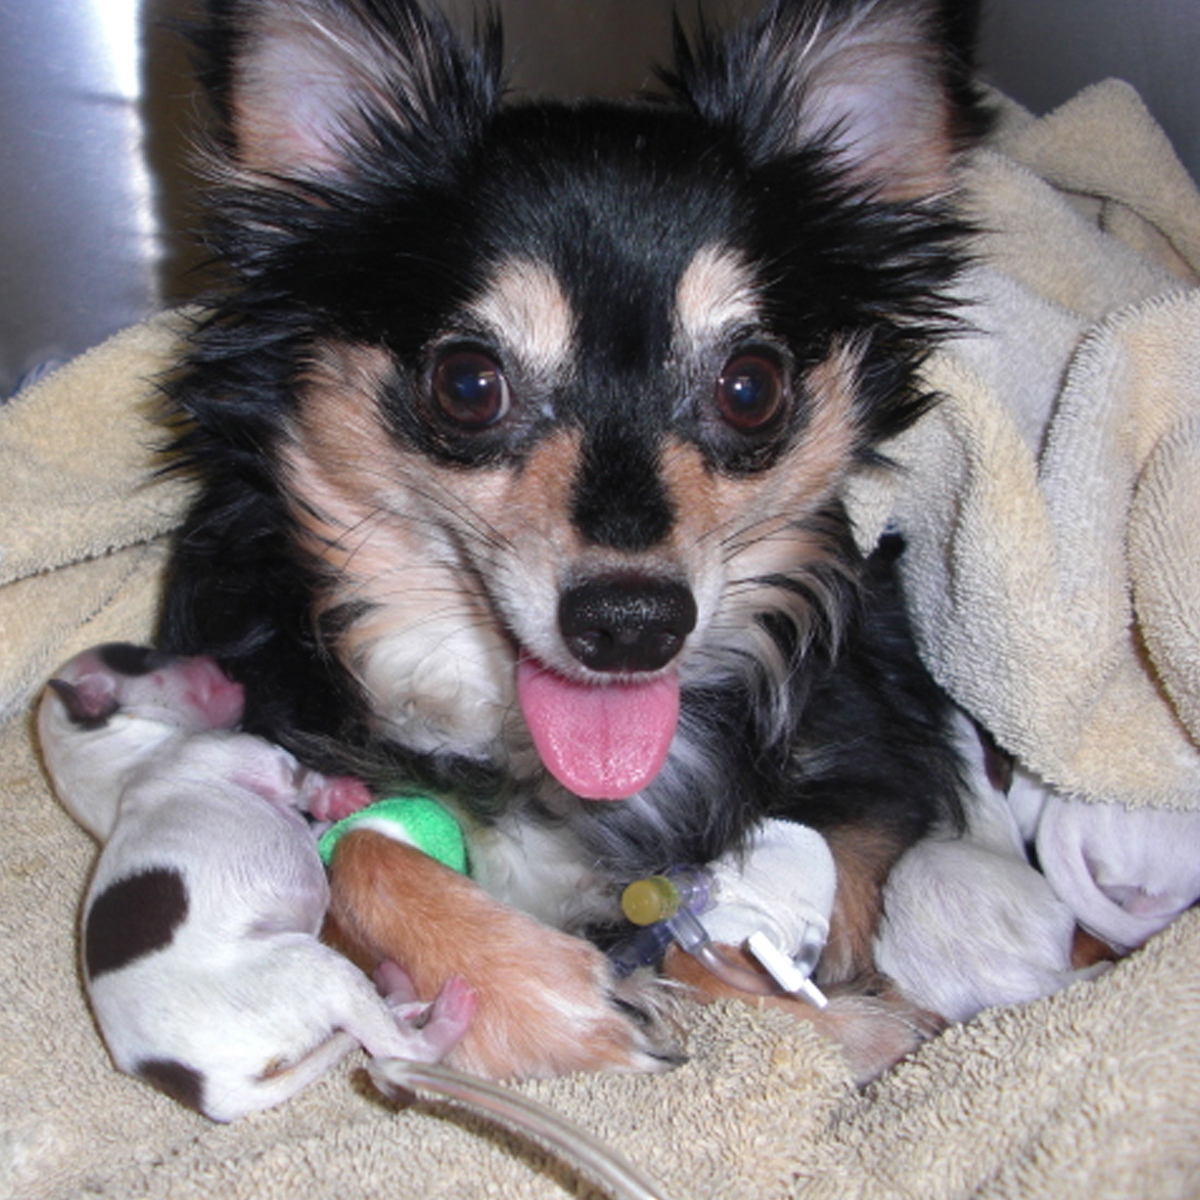 PET STORIES: Dog Birth Risks and Successes